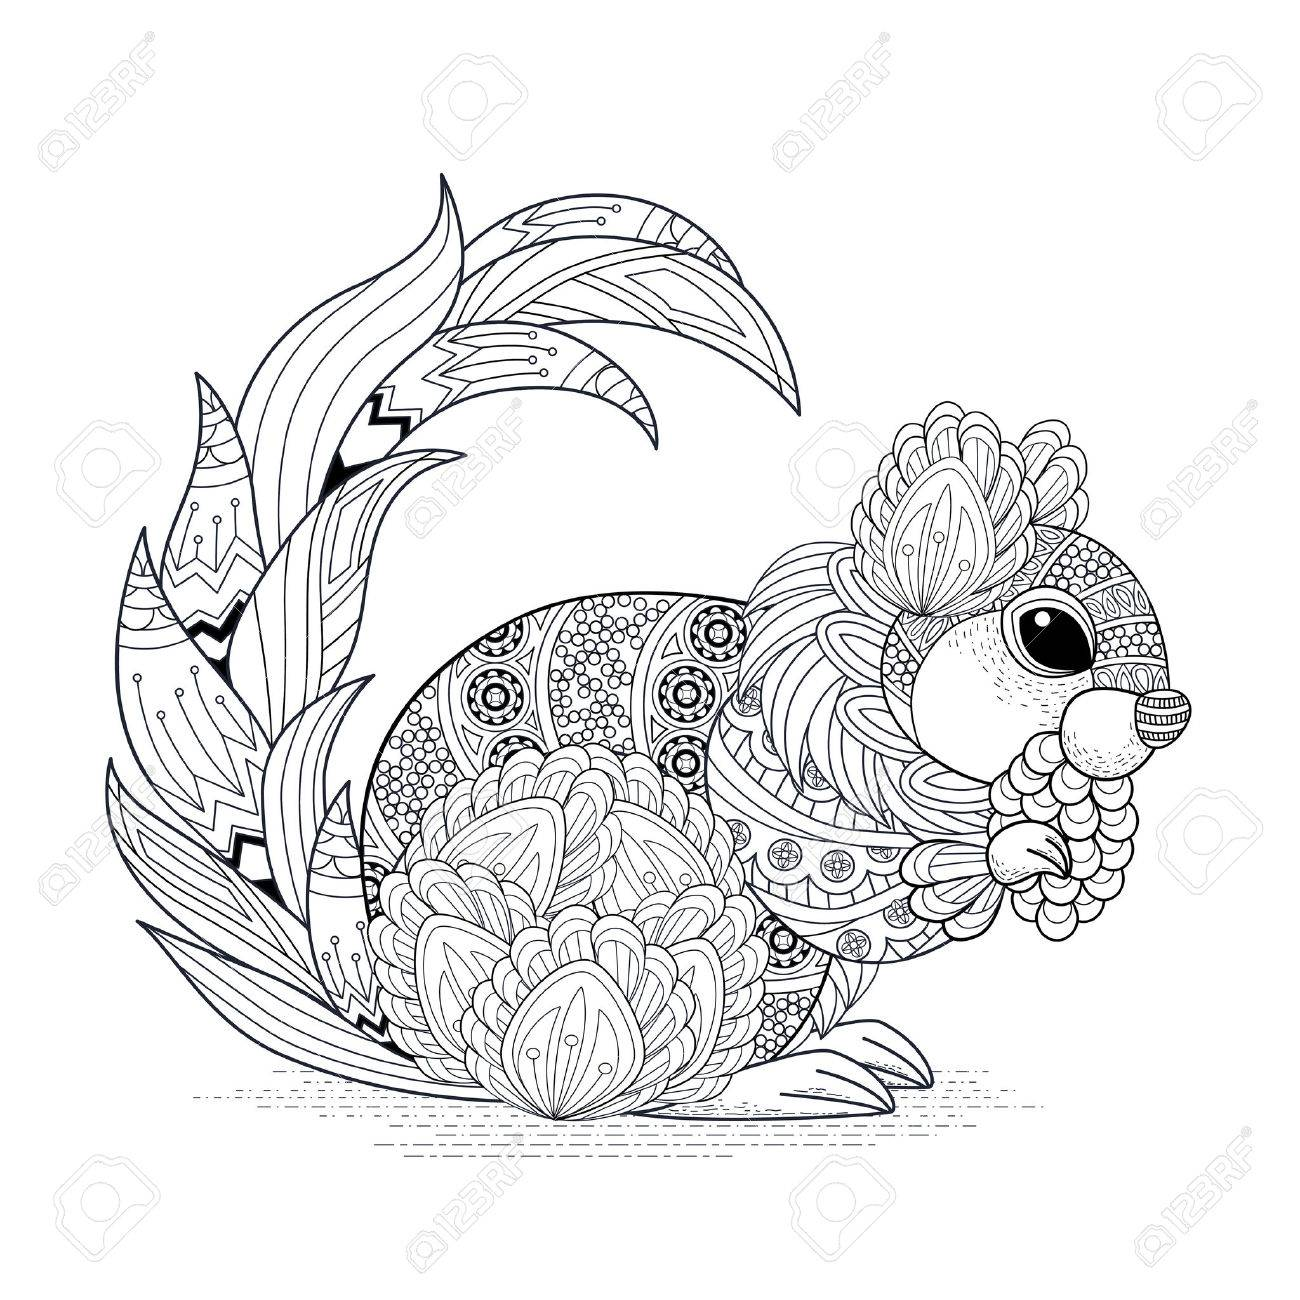 squirrel coloring pages printable coloring pages of squirrels - Squirrel Coloring Pages Printable